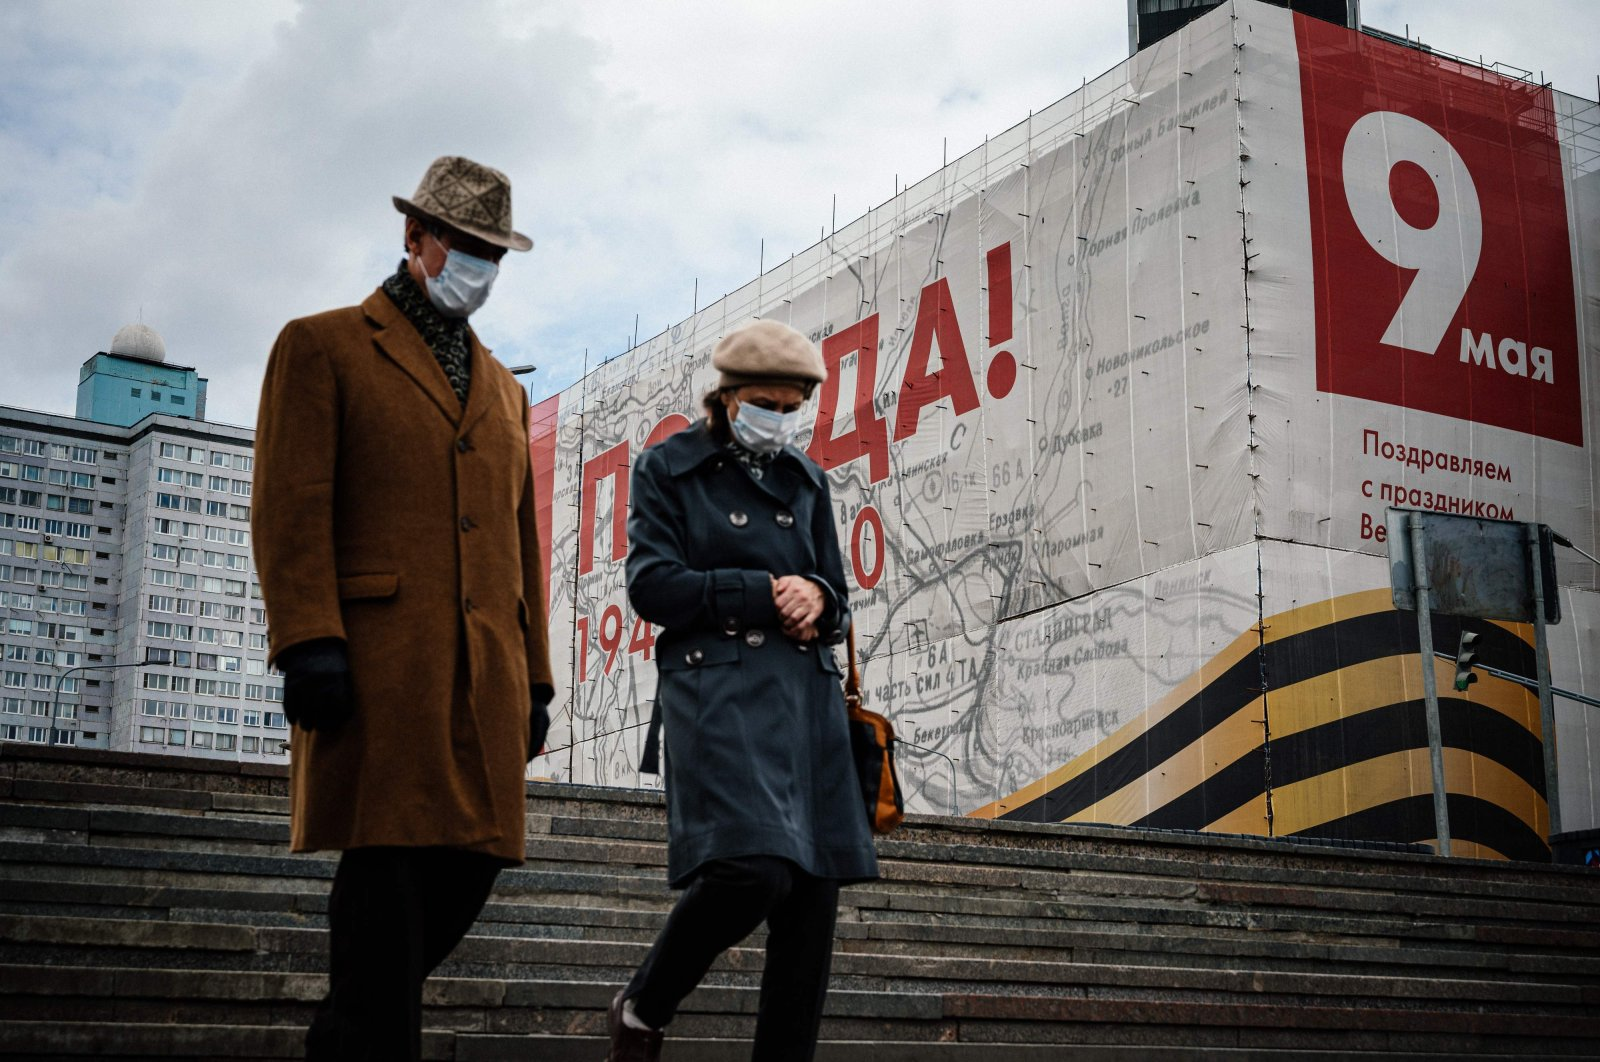 A couple wearing face masks walks in front of a huge banner for the upcoming 75th anniversary of the Soviet victory over Nazi Germany in World War II that is used to cover a building under renovation, Moscow, Russia, May 7, 2020. (AFP Photo)